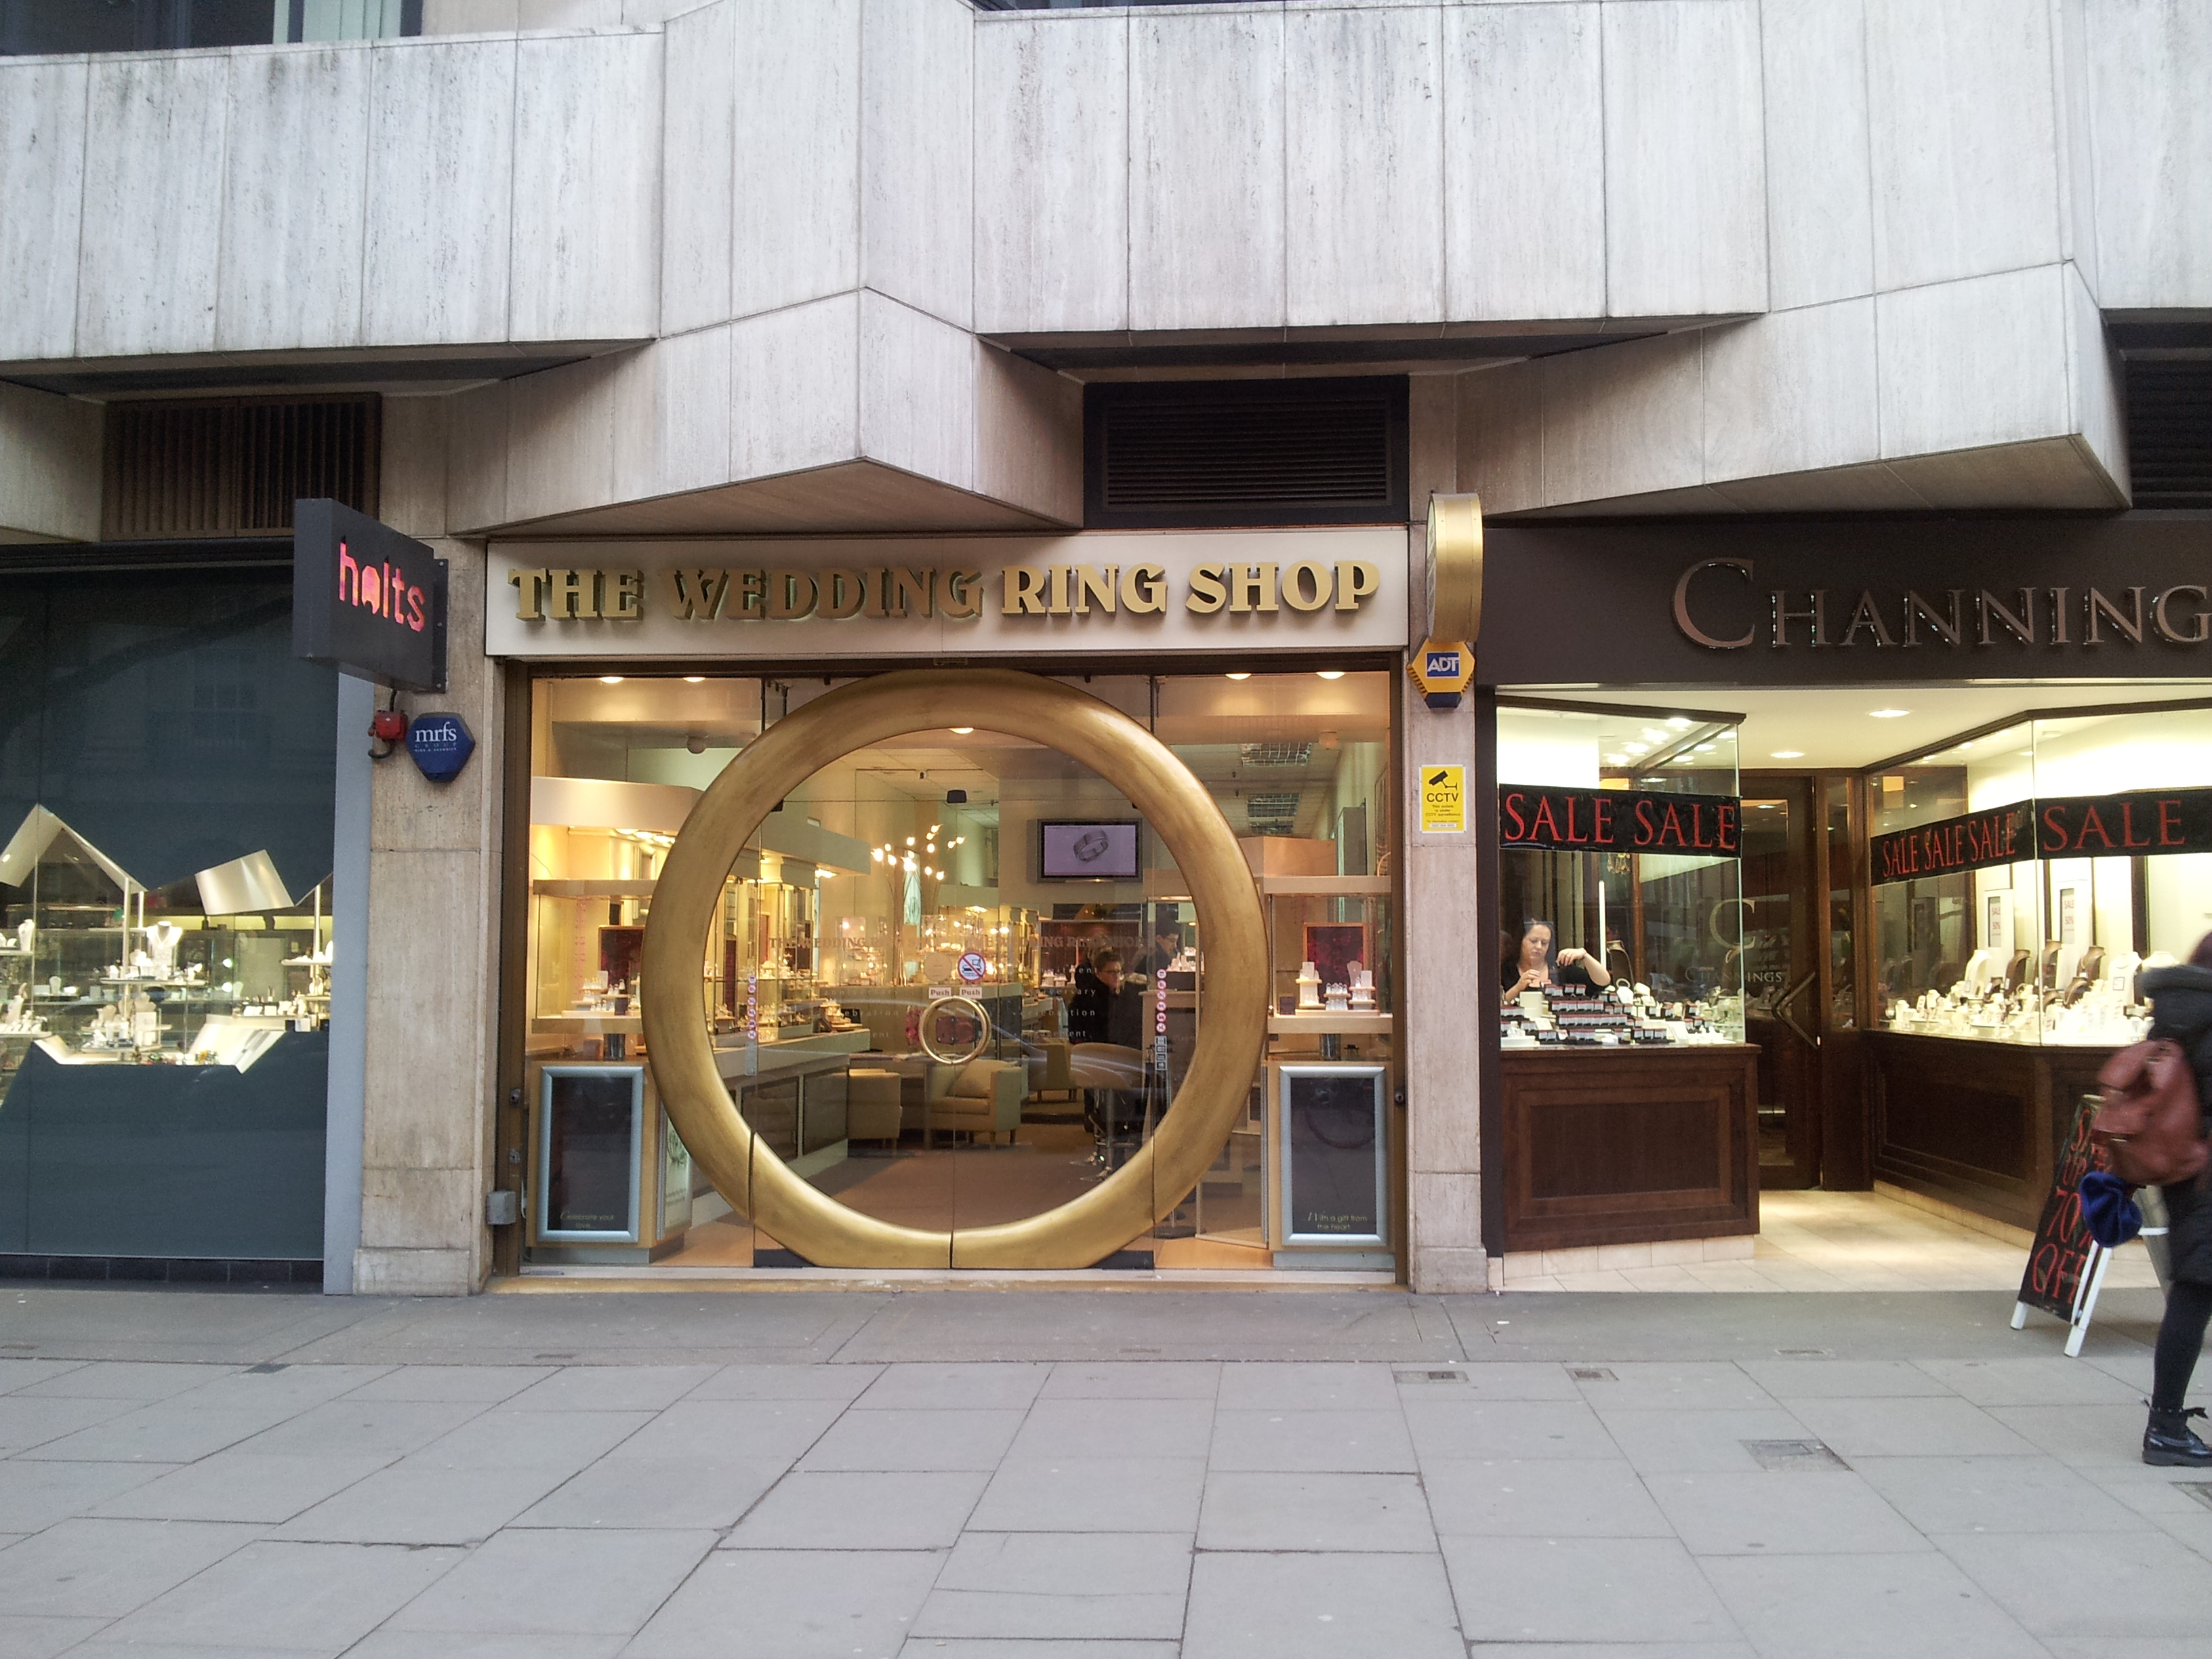 a shop called the wedding ring shop with a large gold painted ring set - The Wedding Ring Shop